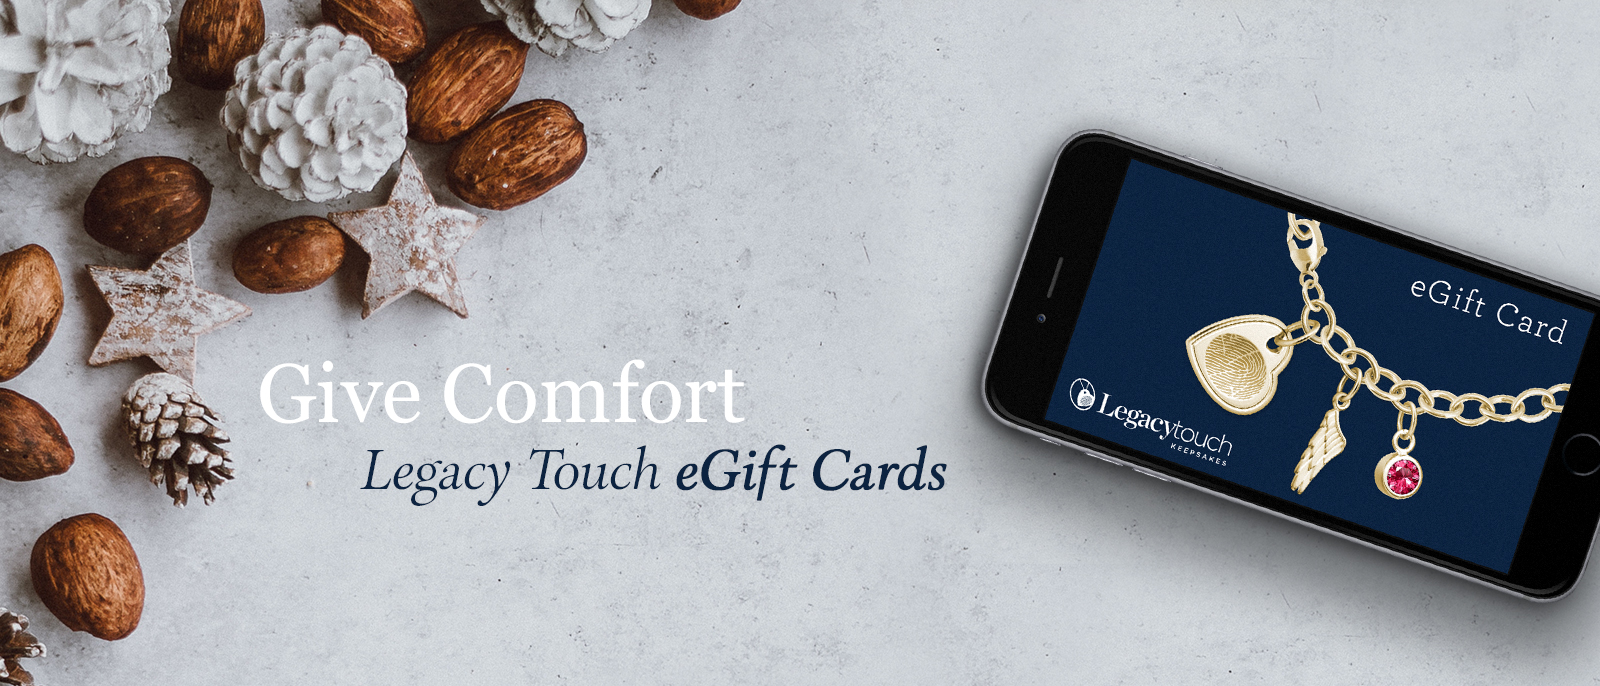 Give Comfort with a Legacy Touch eGift Card